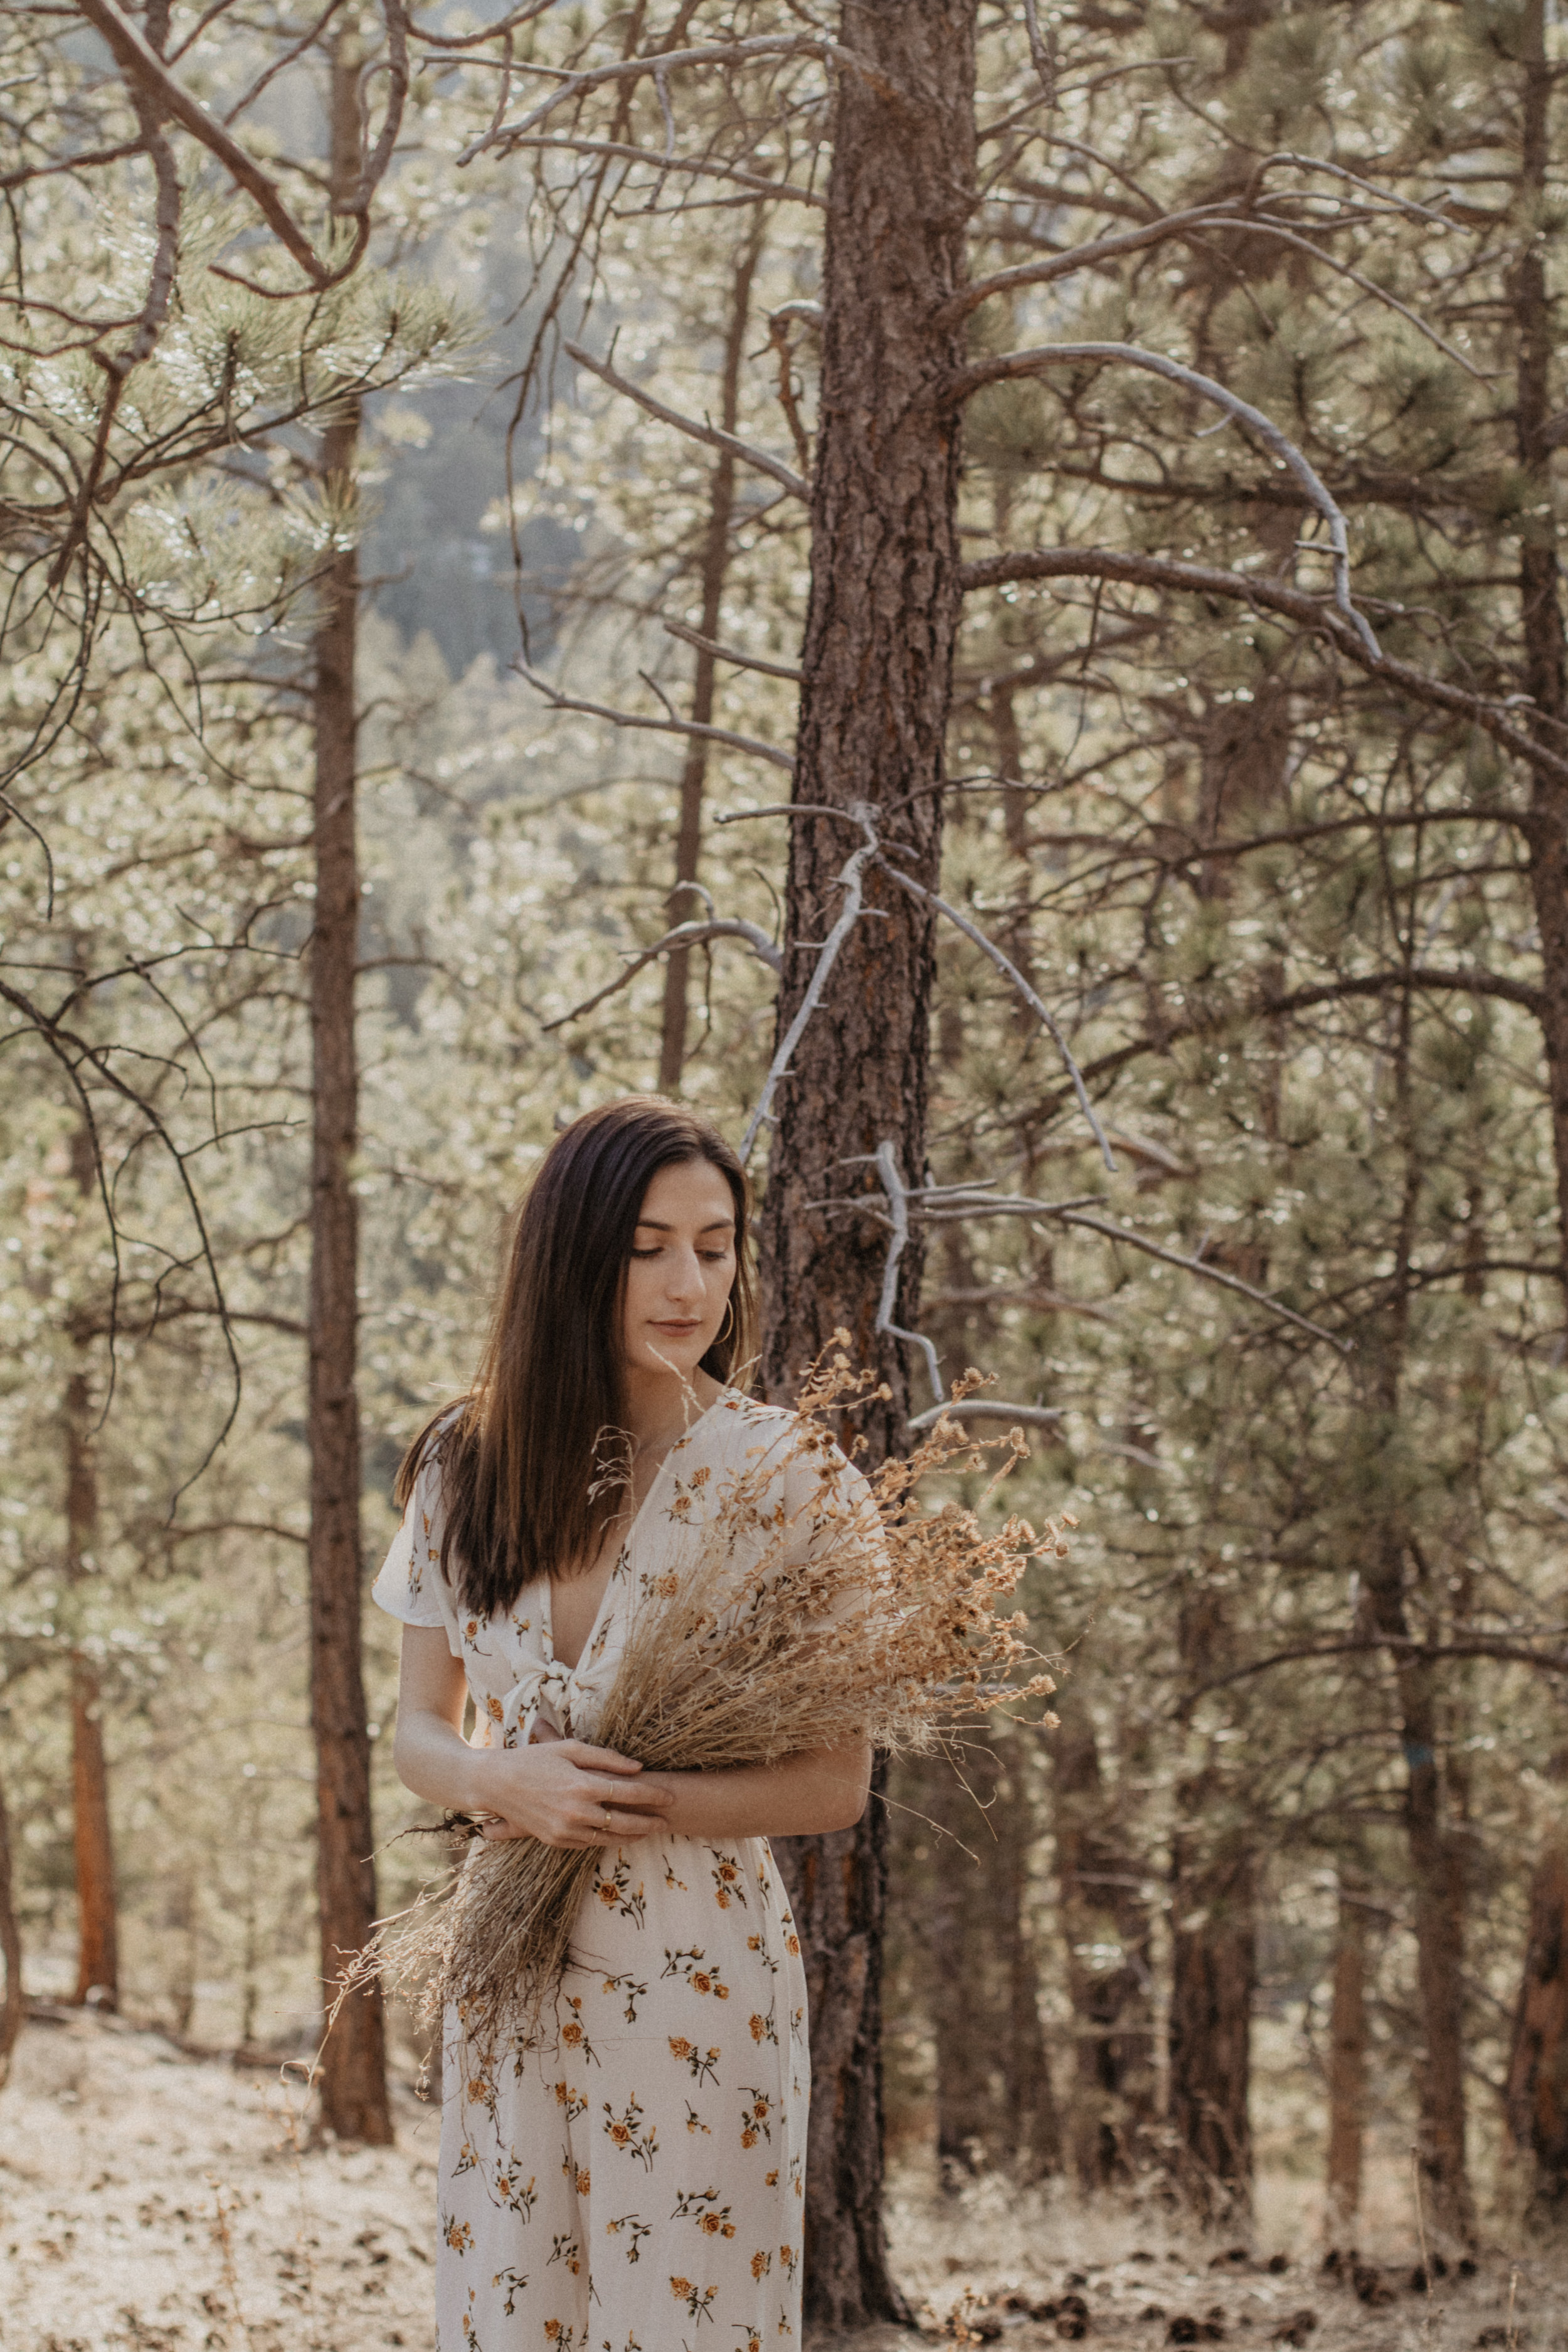 haley-holding-flowers